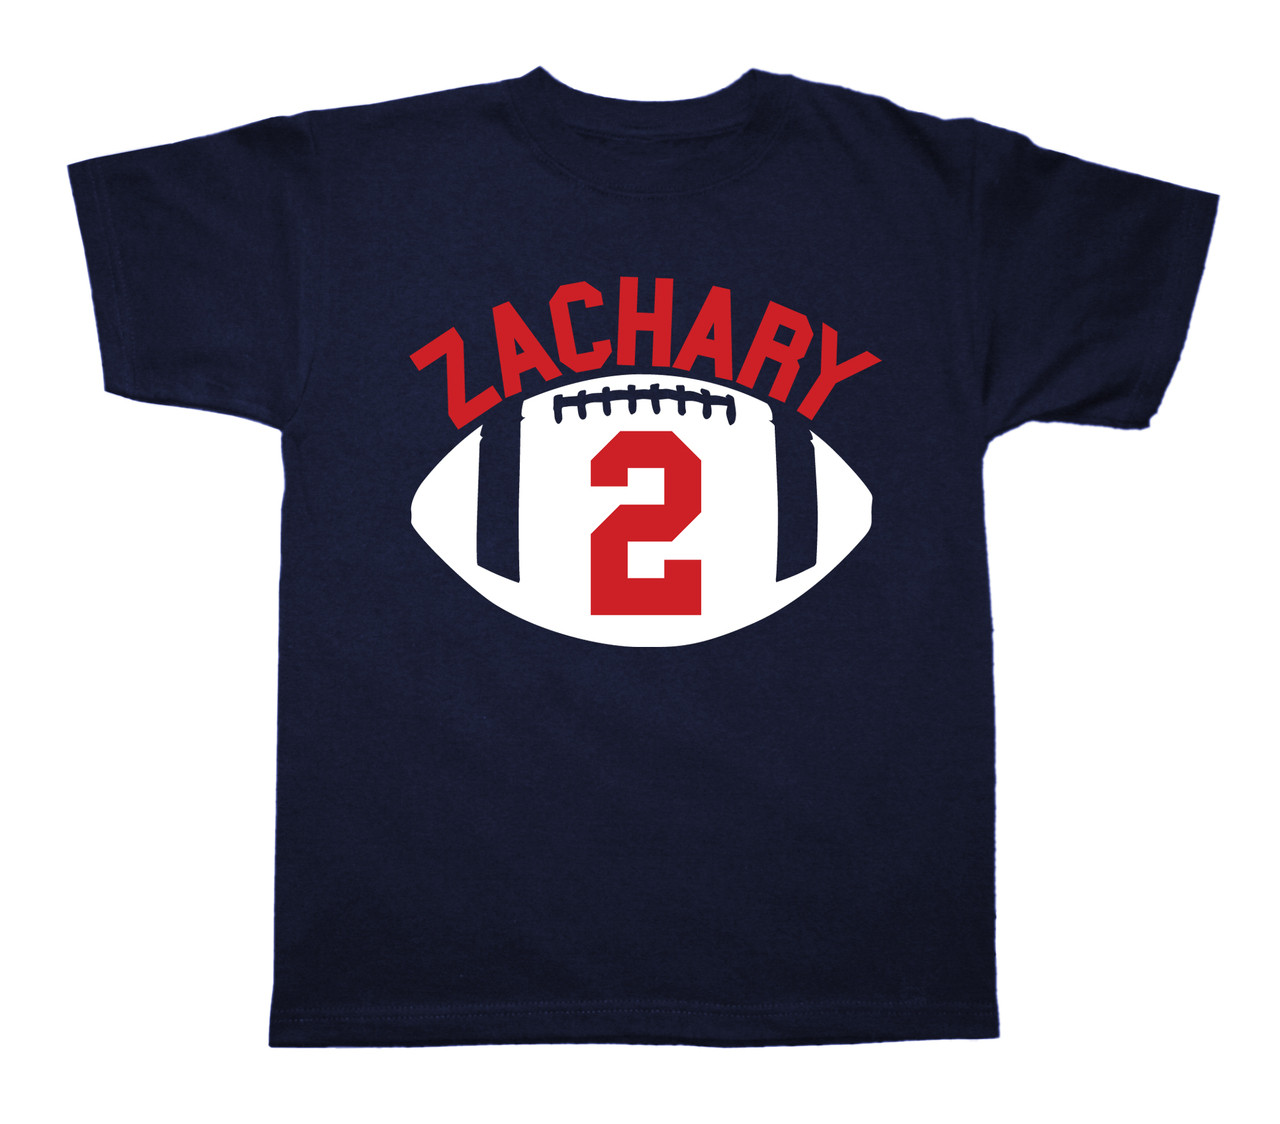 Football personalized birthday shirt on Navy blue